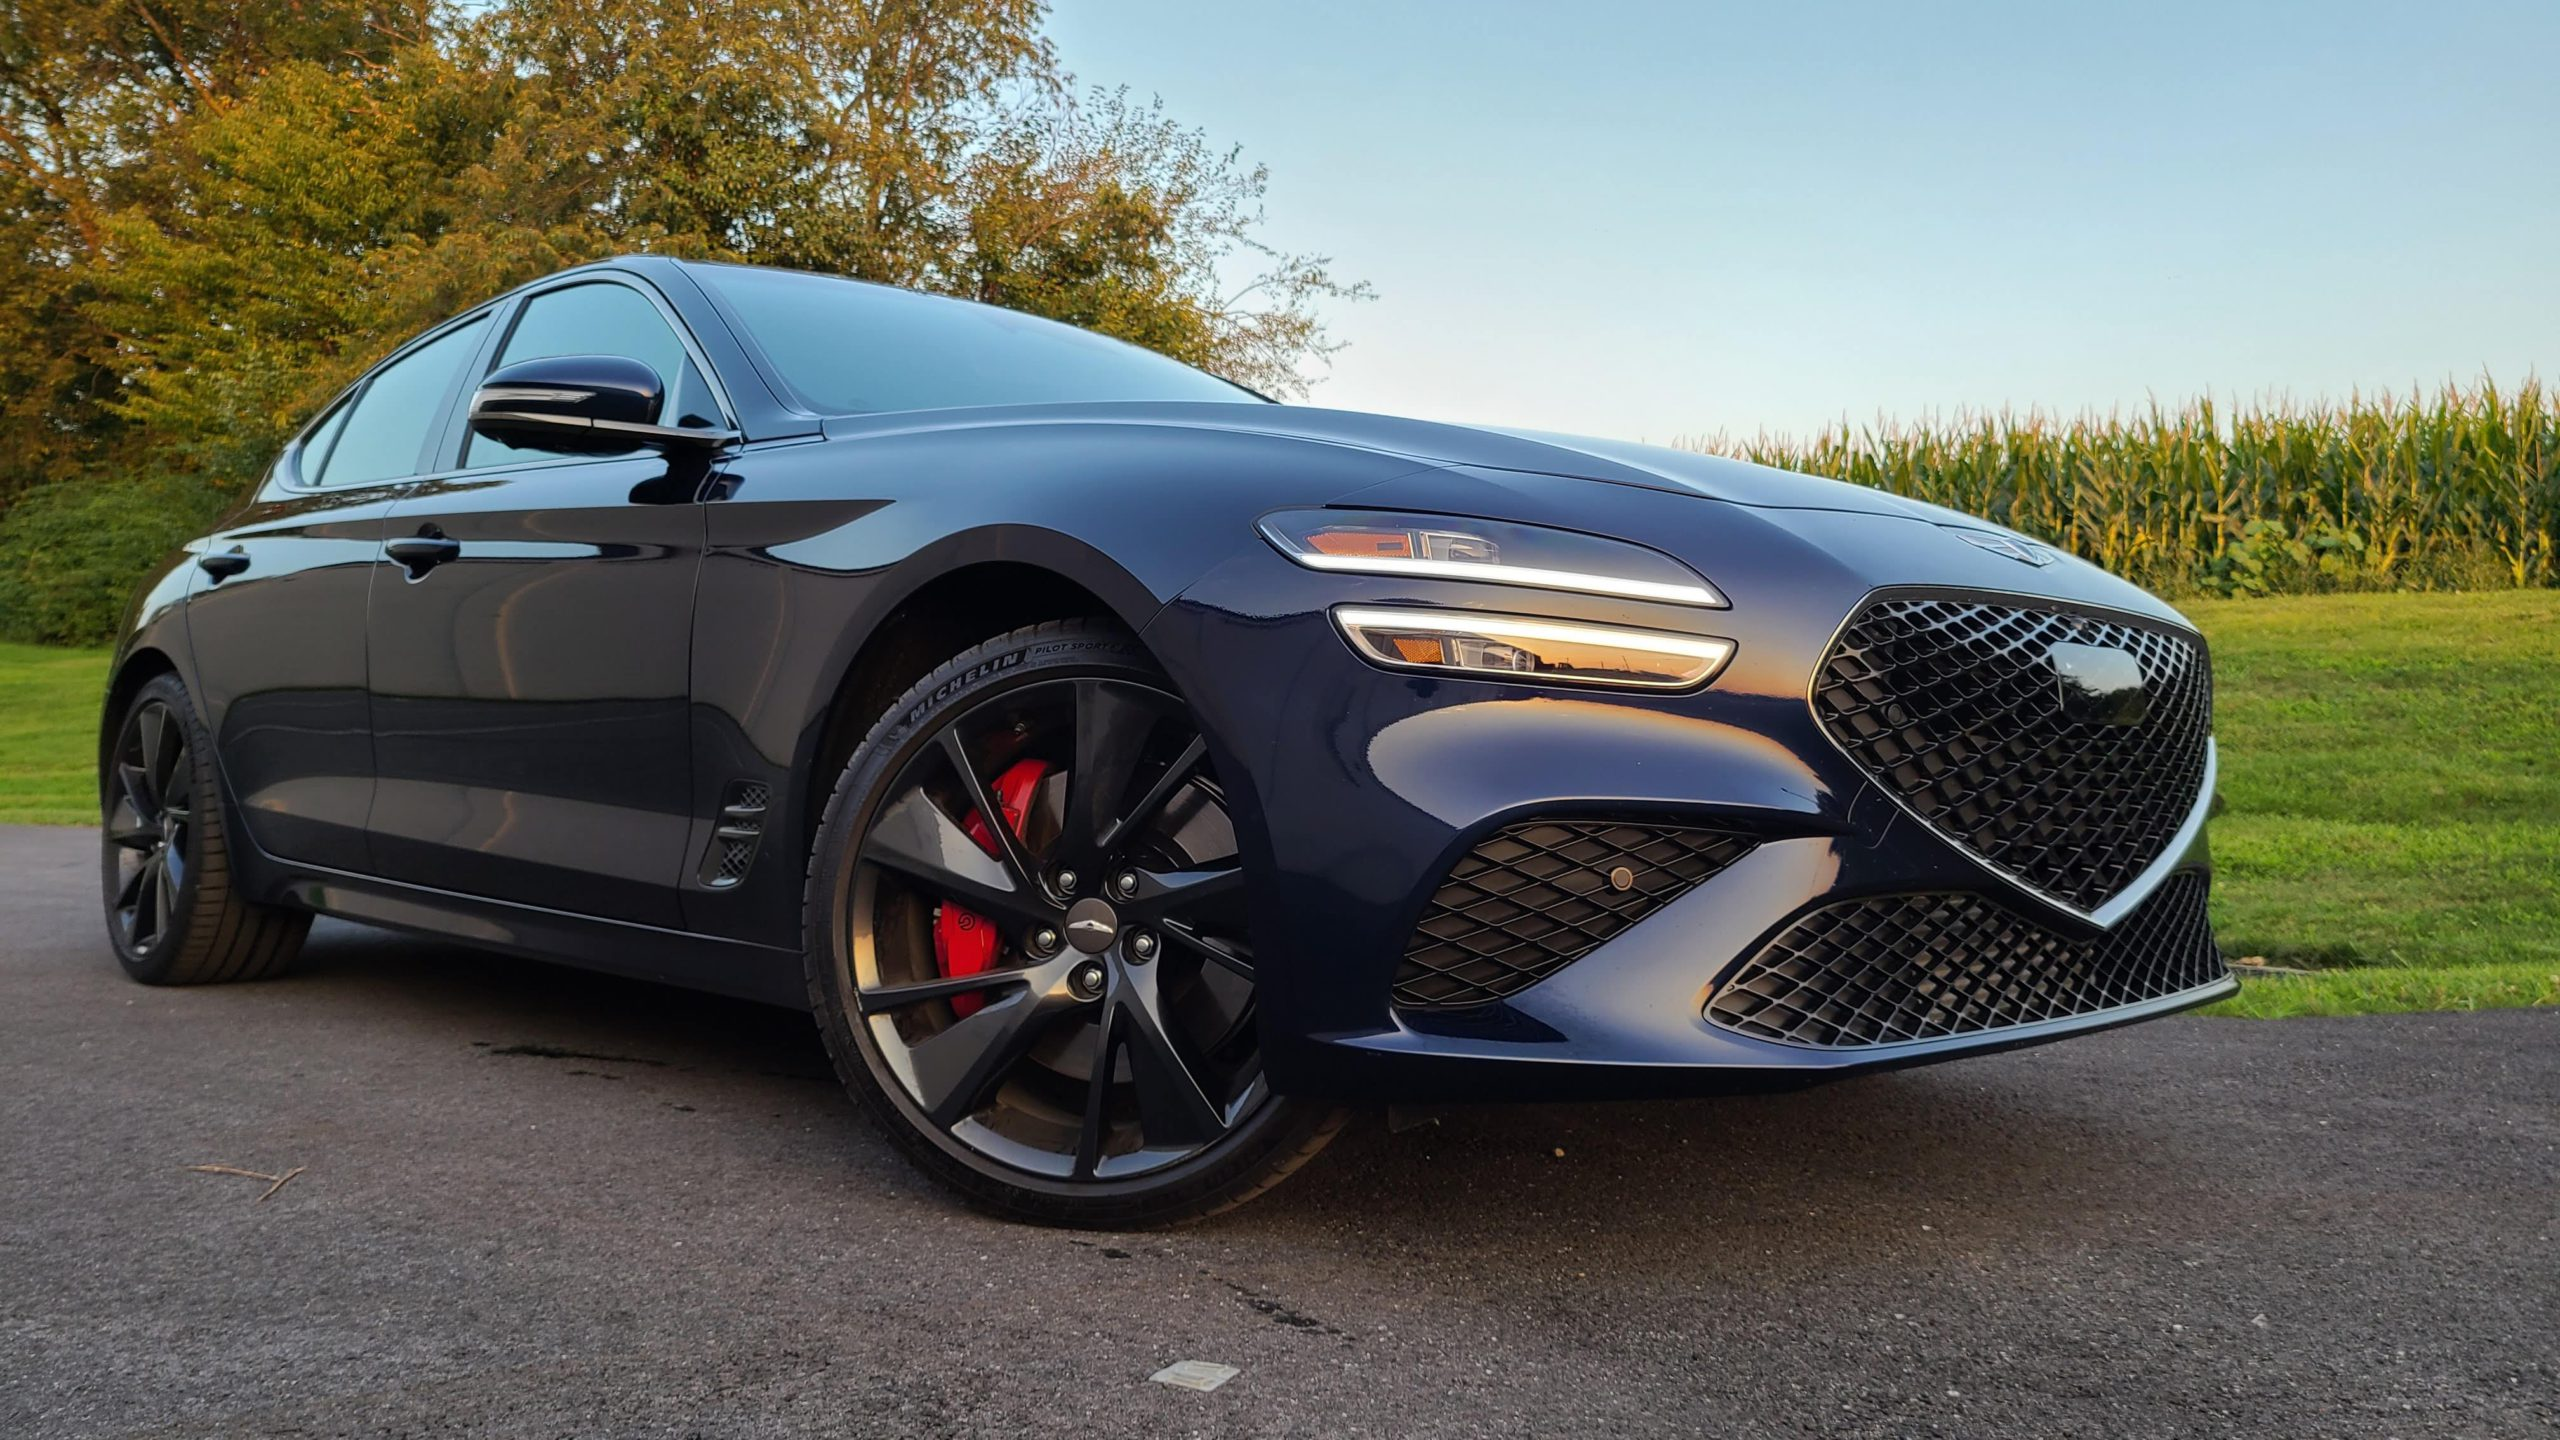 2022 Genesis G70: A Powerful, Driver-Centric Package